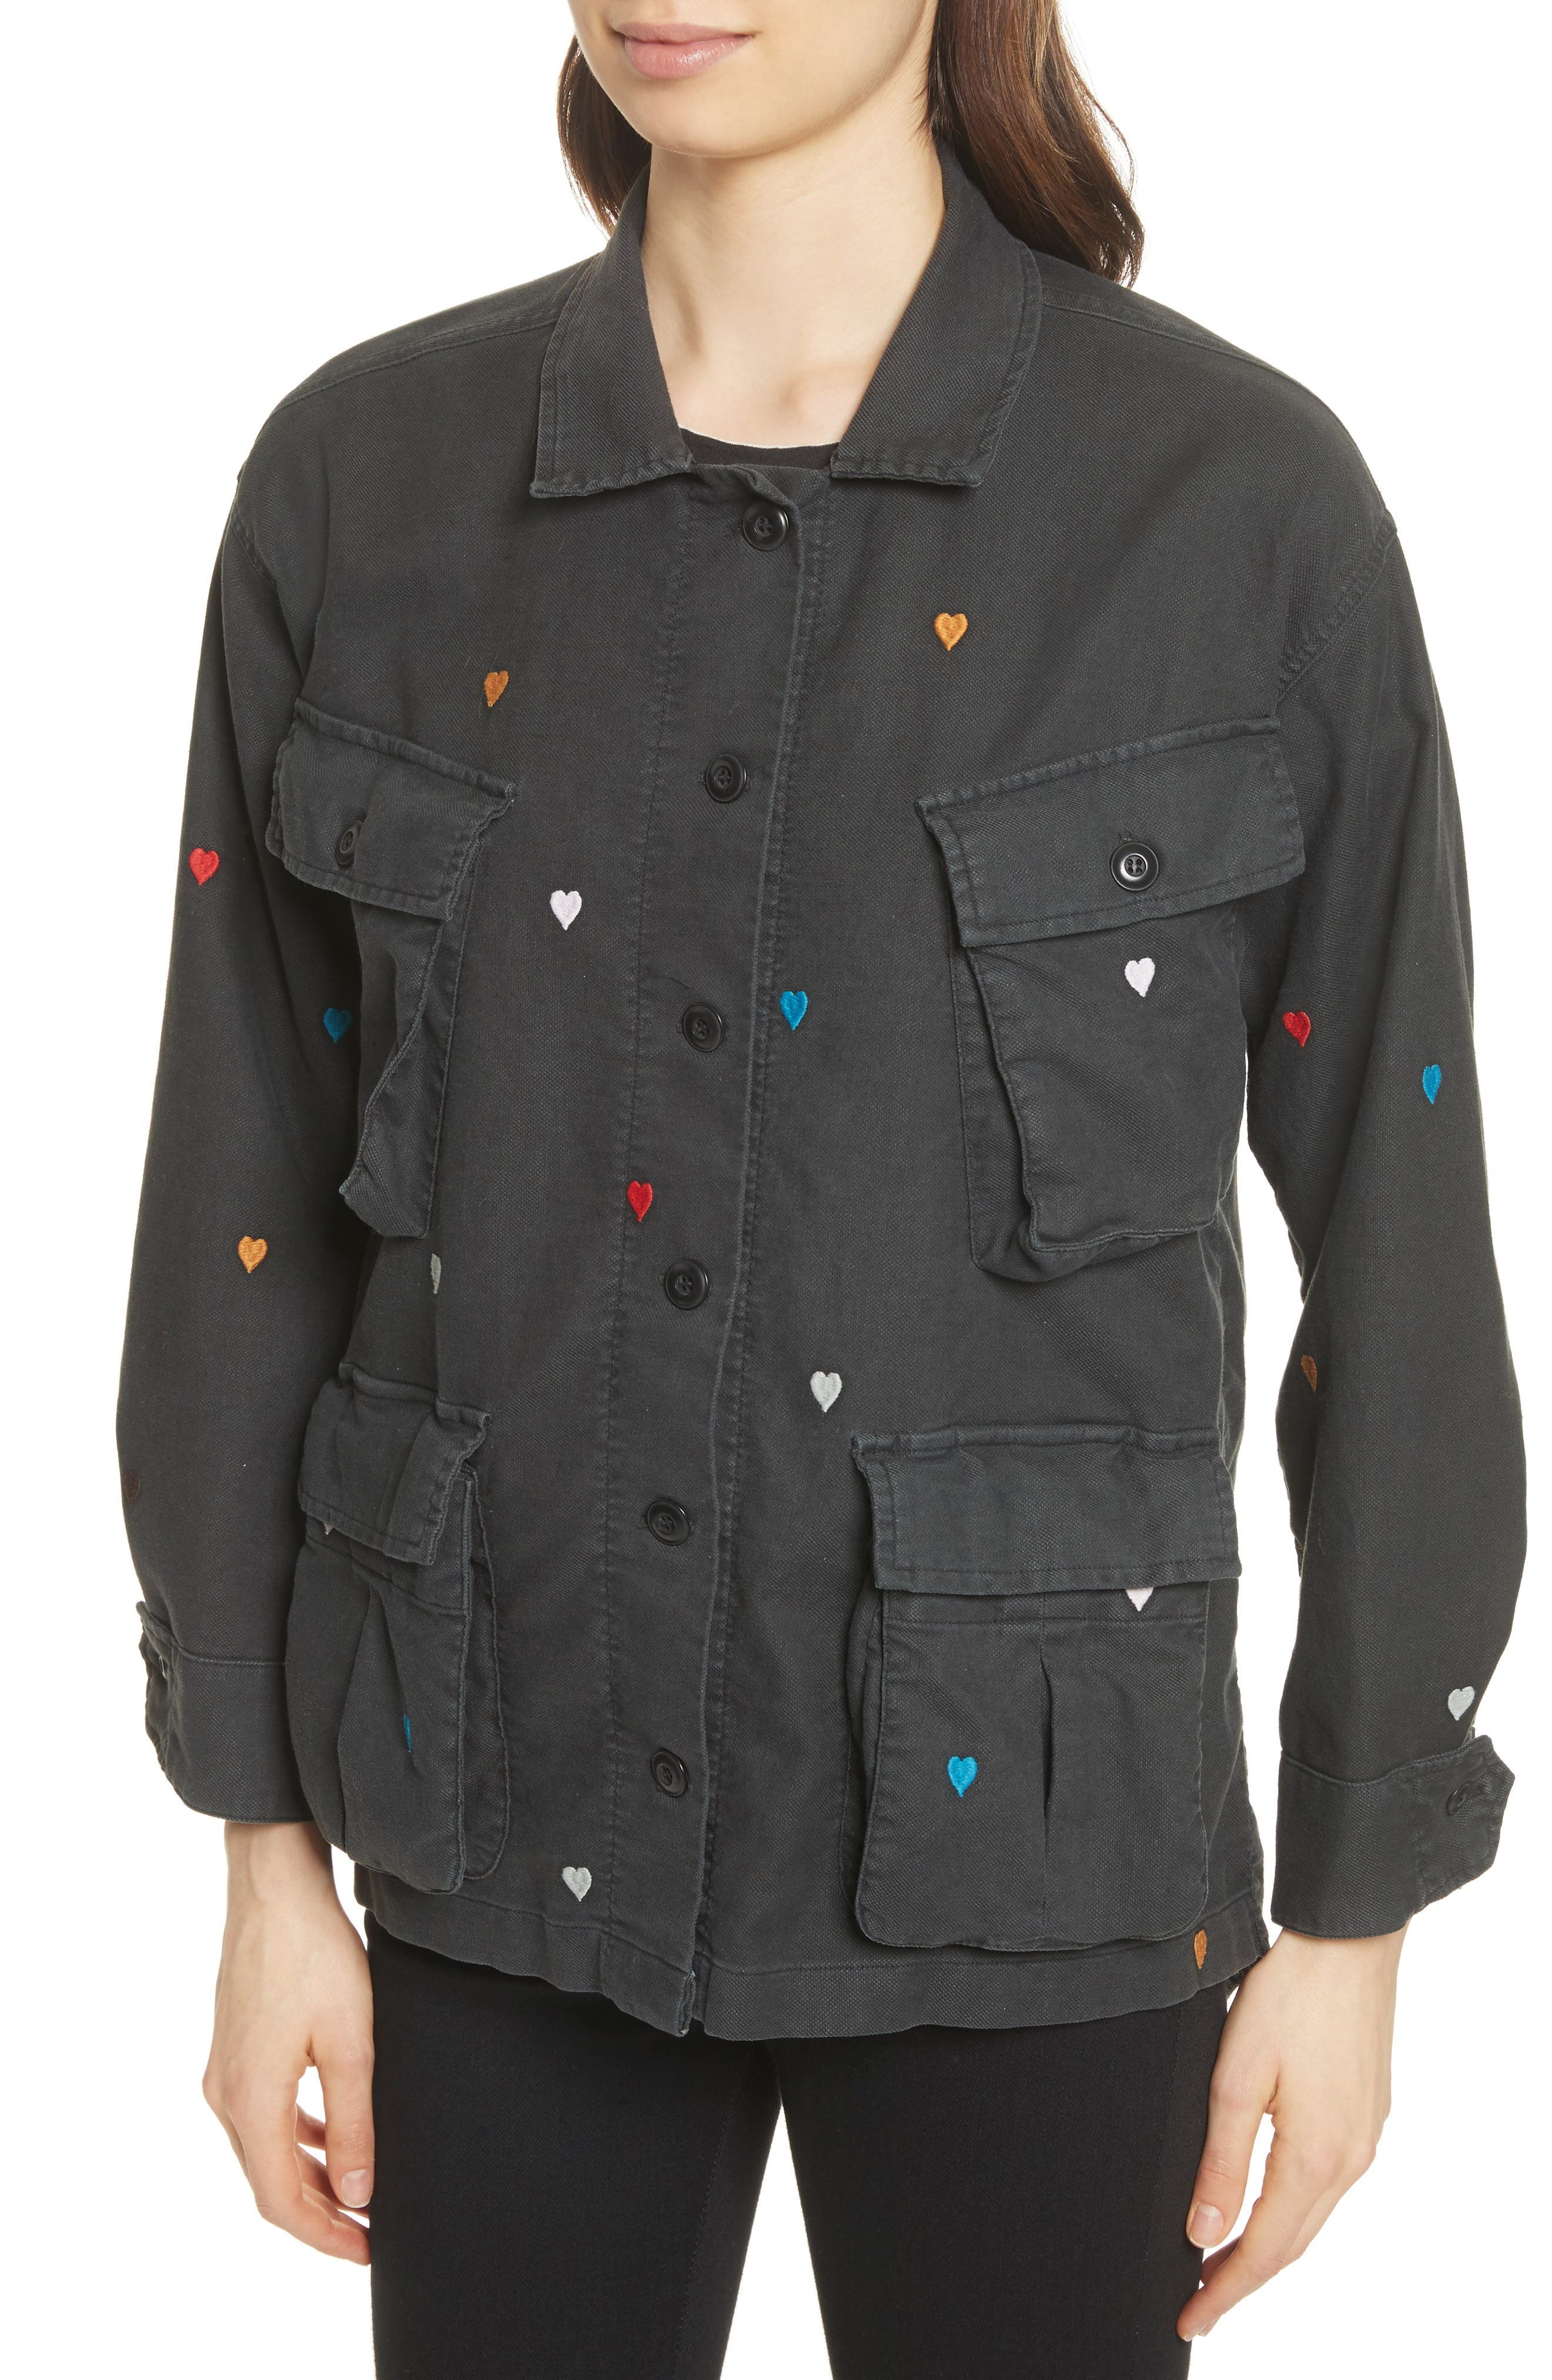 The Commander Embroidered Jacket,                             Alternate thumbnail 4, color,                             Black/ Heart Embroidery